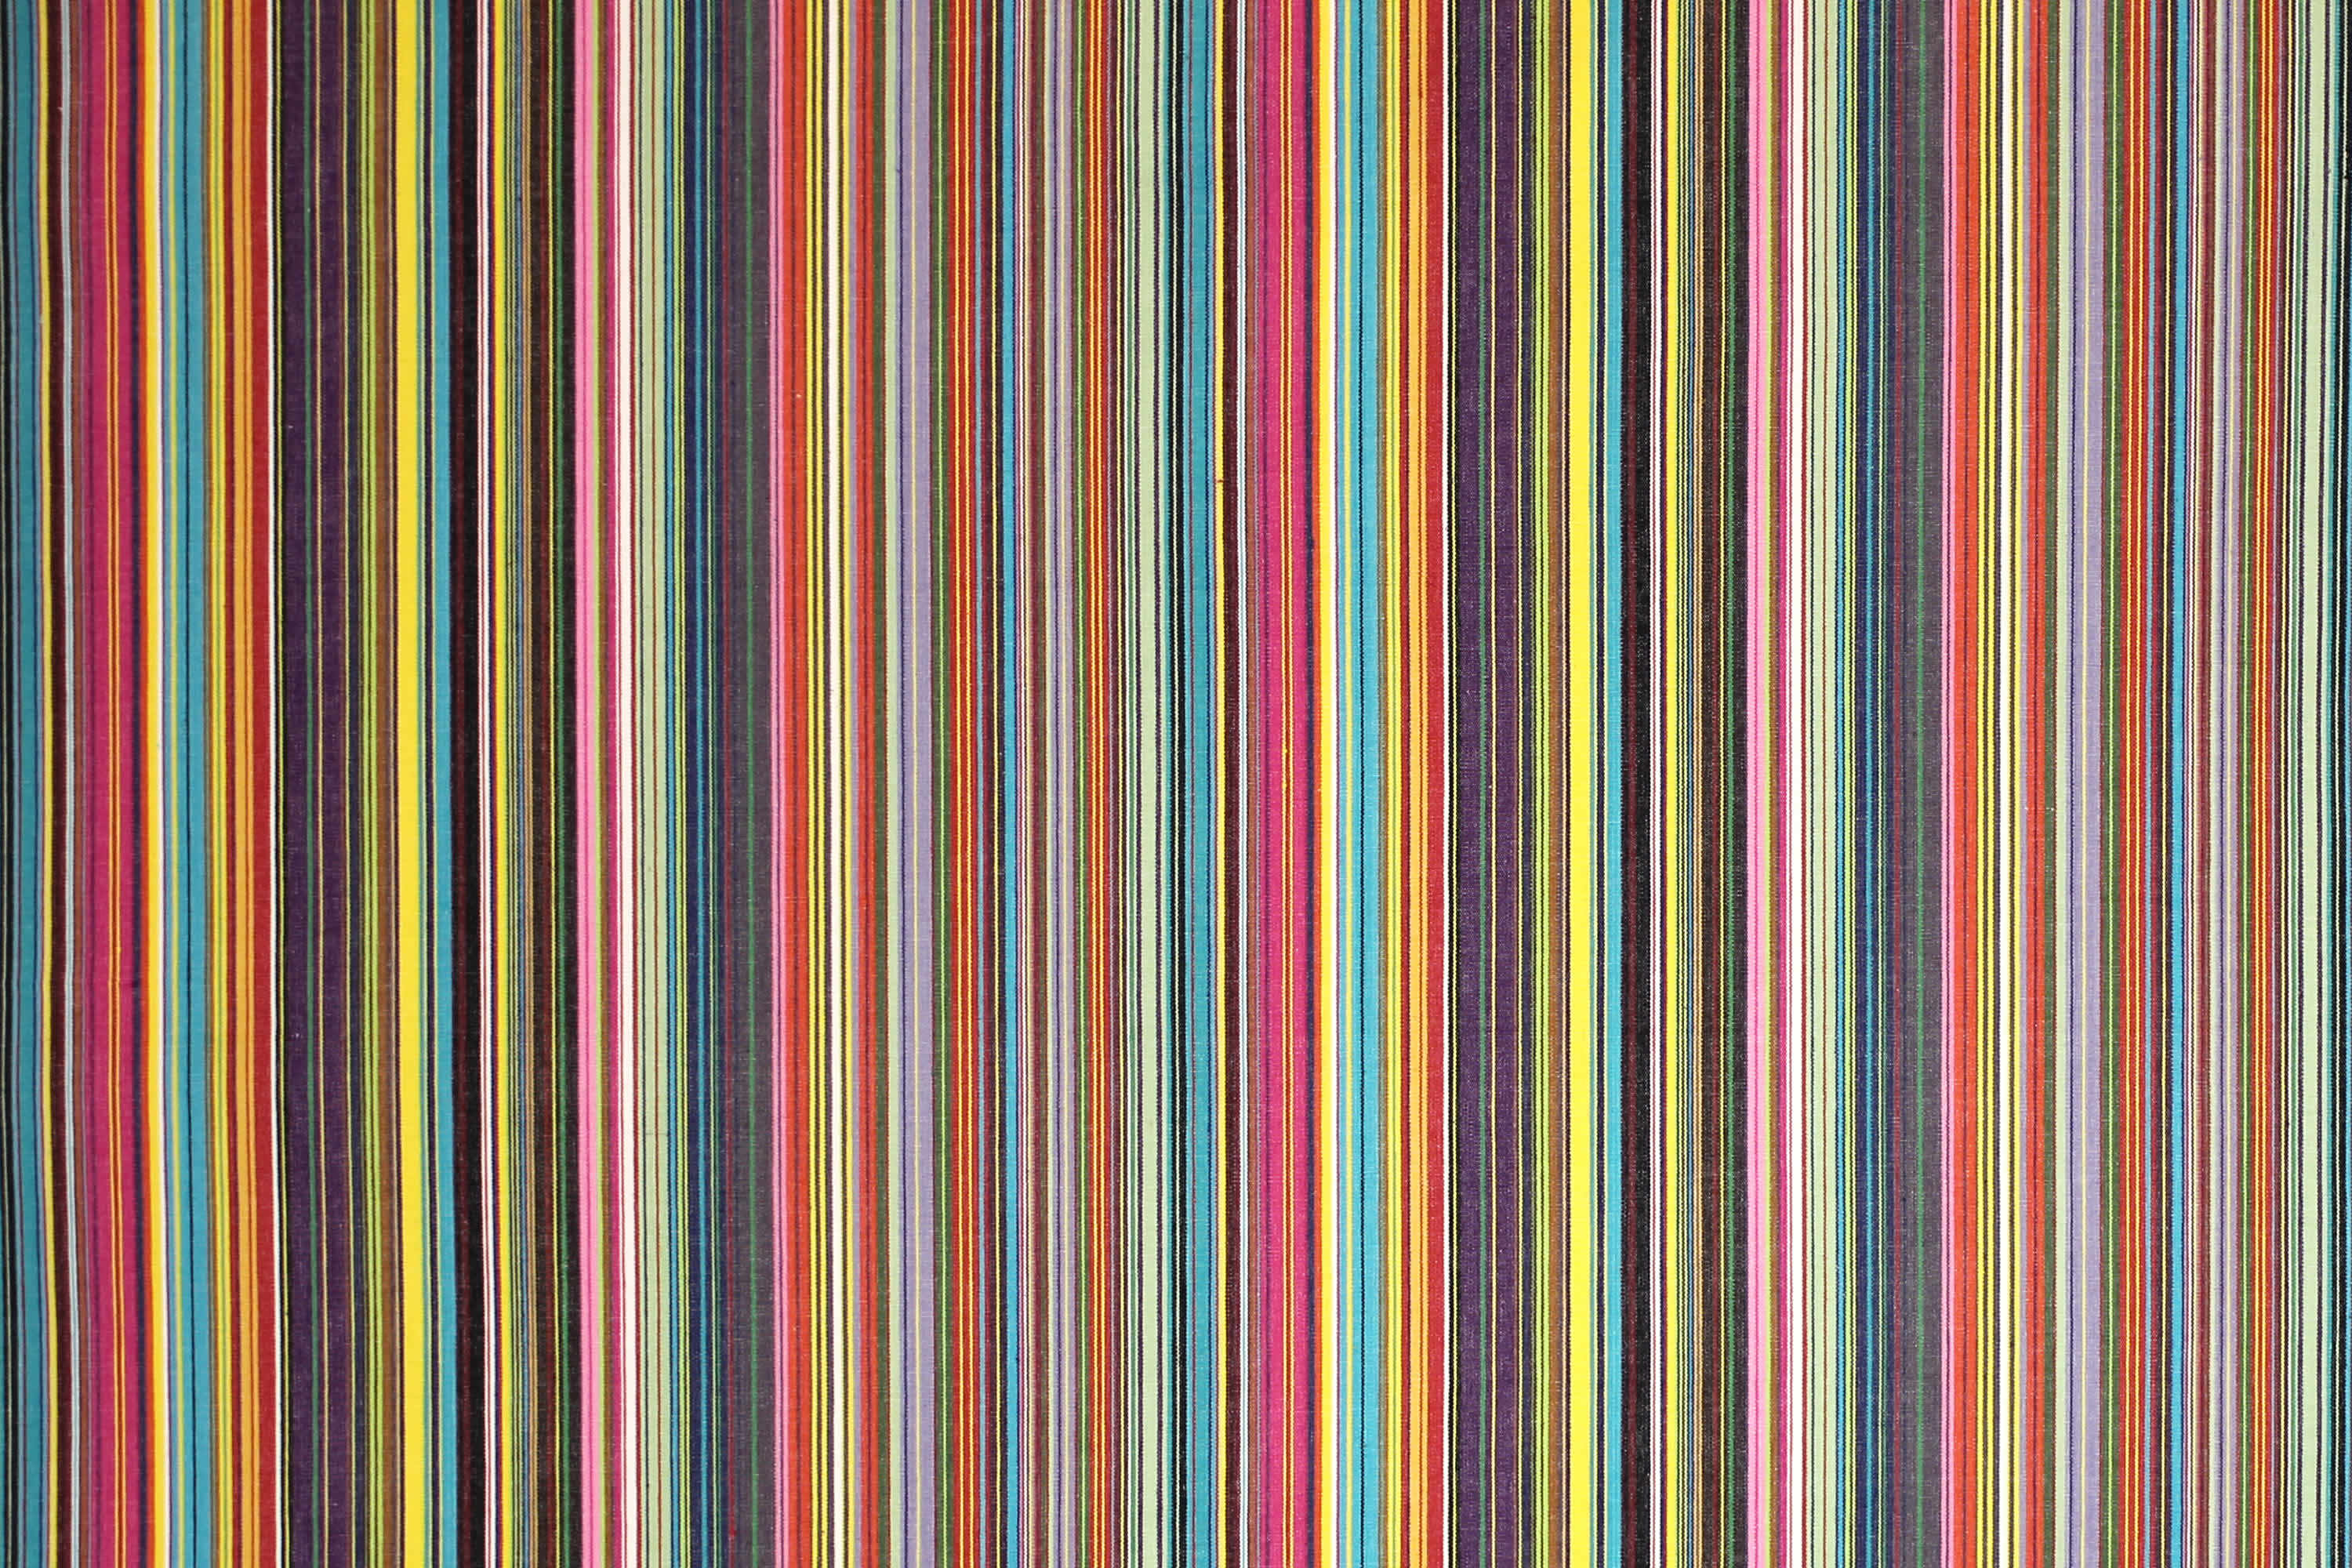 Thin Rainbow Multi Stripes  Striped Fabrics | Stripe Cotton Fabrics | Striped Curtain Fabrics | Upholstery Fabrics  Mahjong Stripes